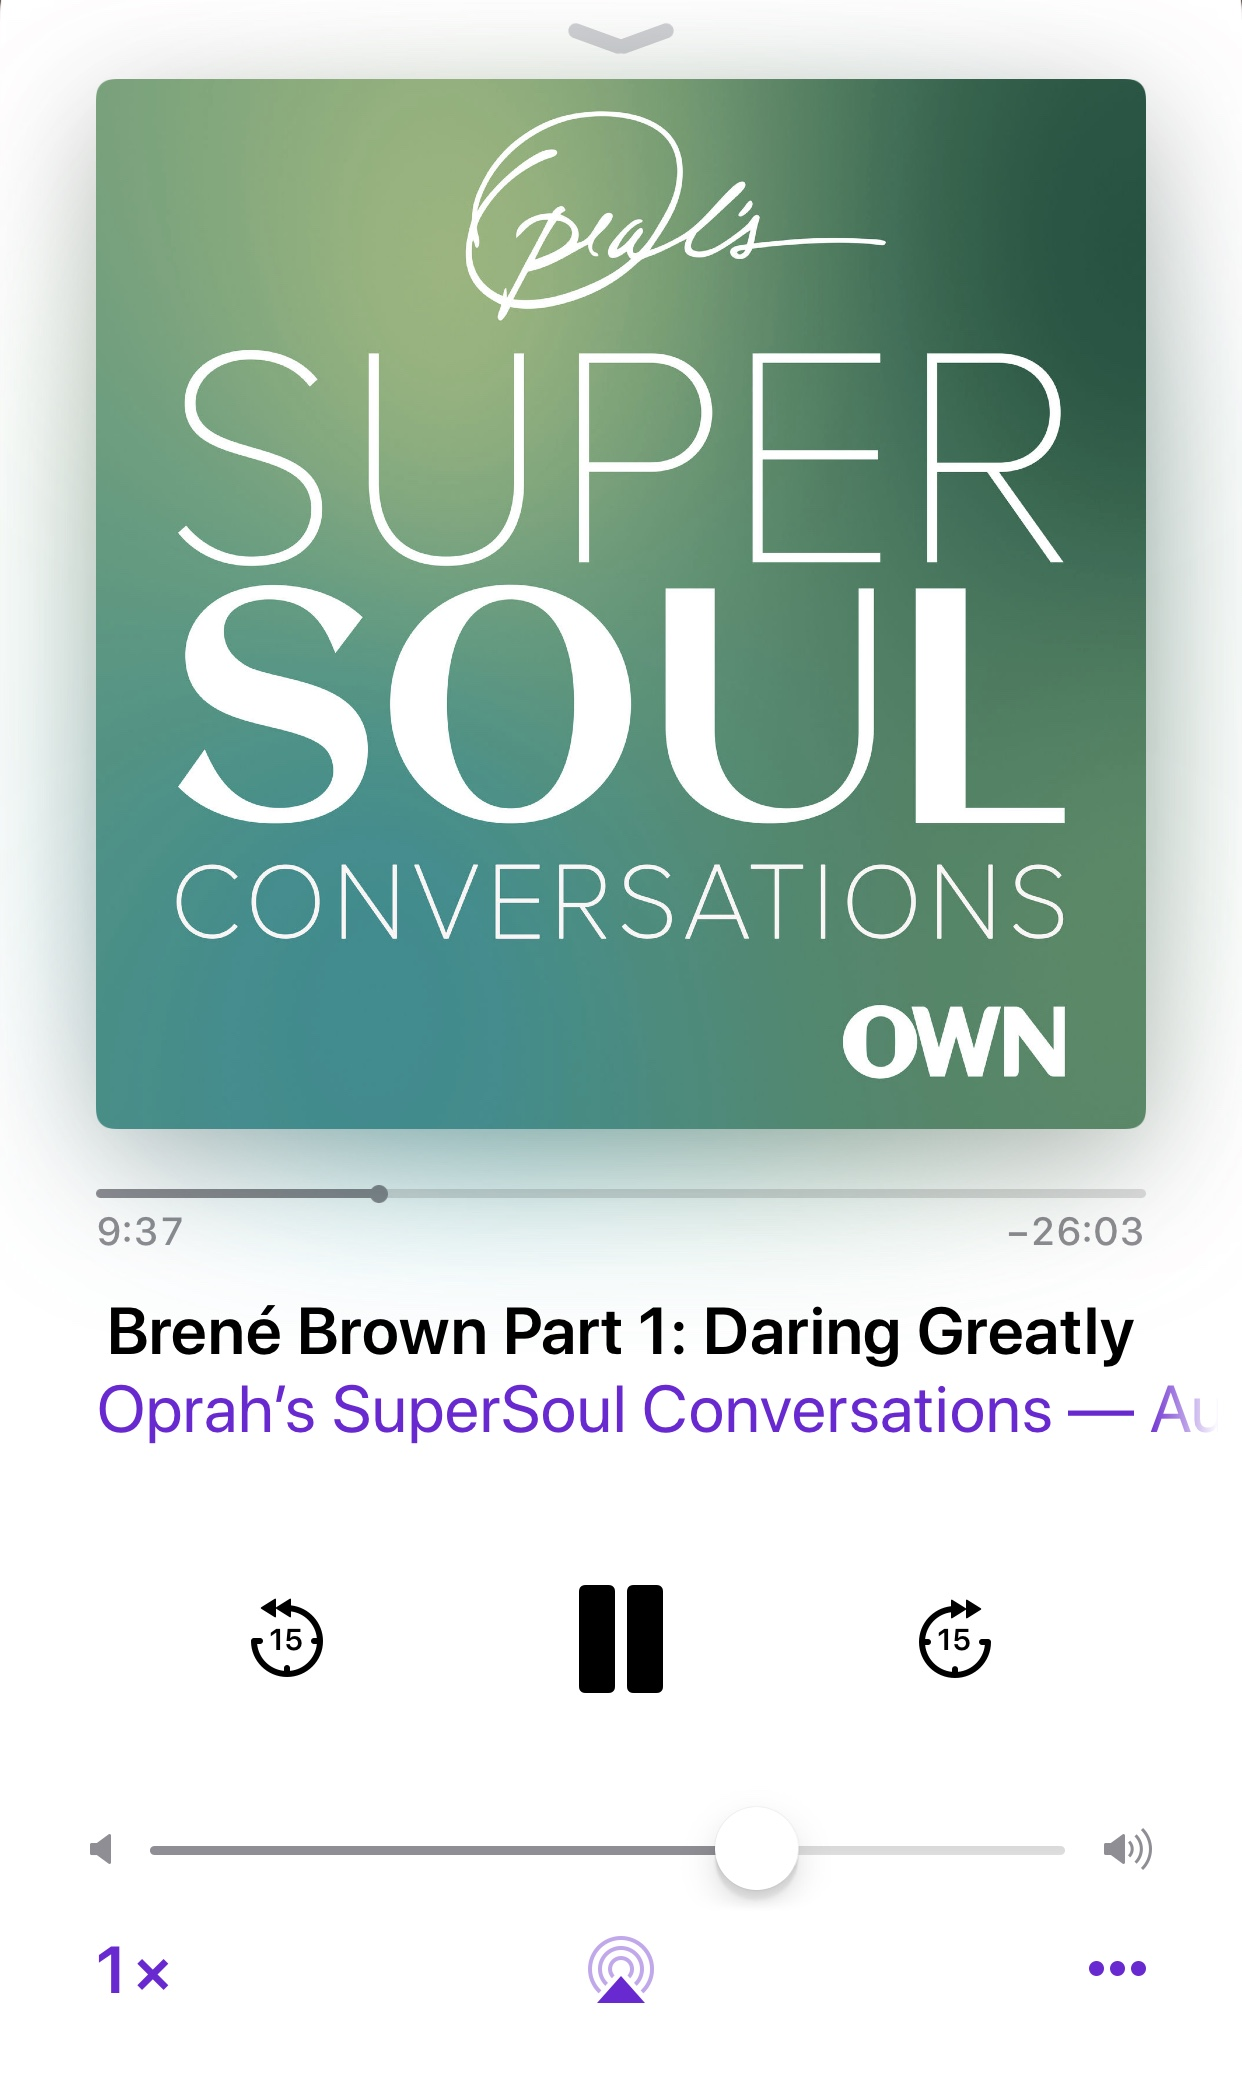 Oprah's SuperSoul Conversation with Brené Brown about her book Daring Greatly.